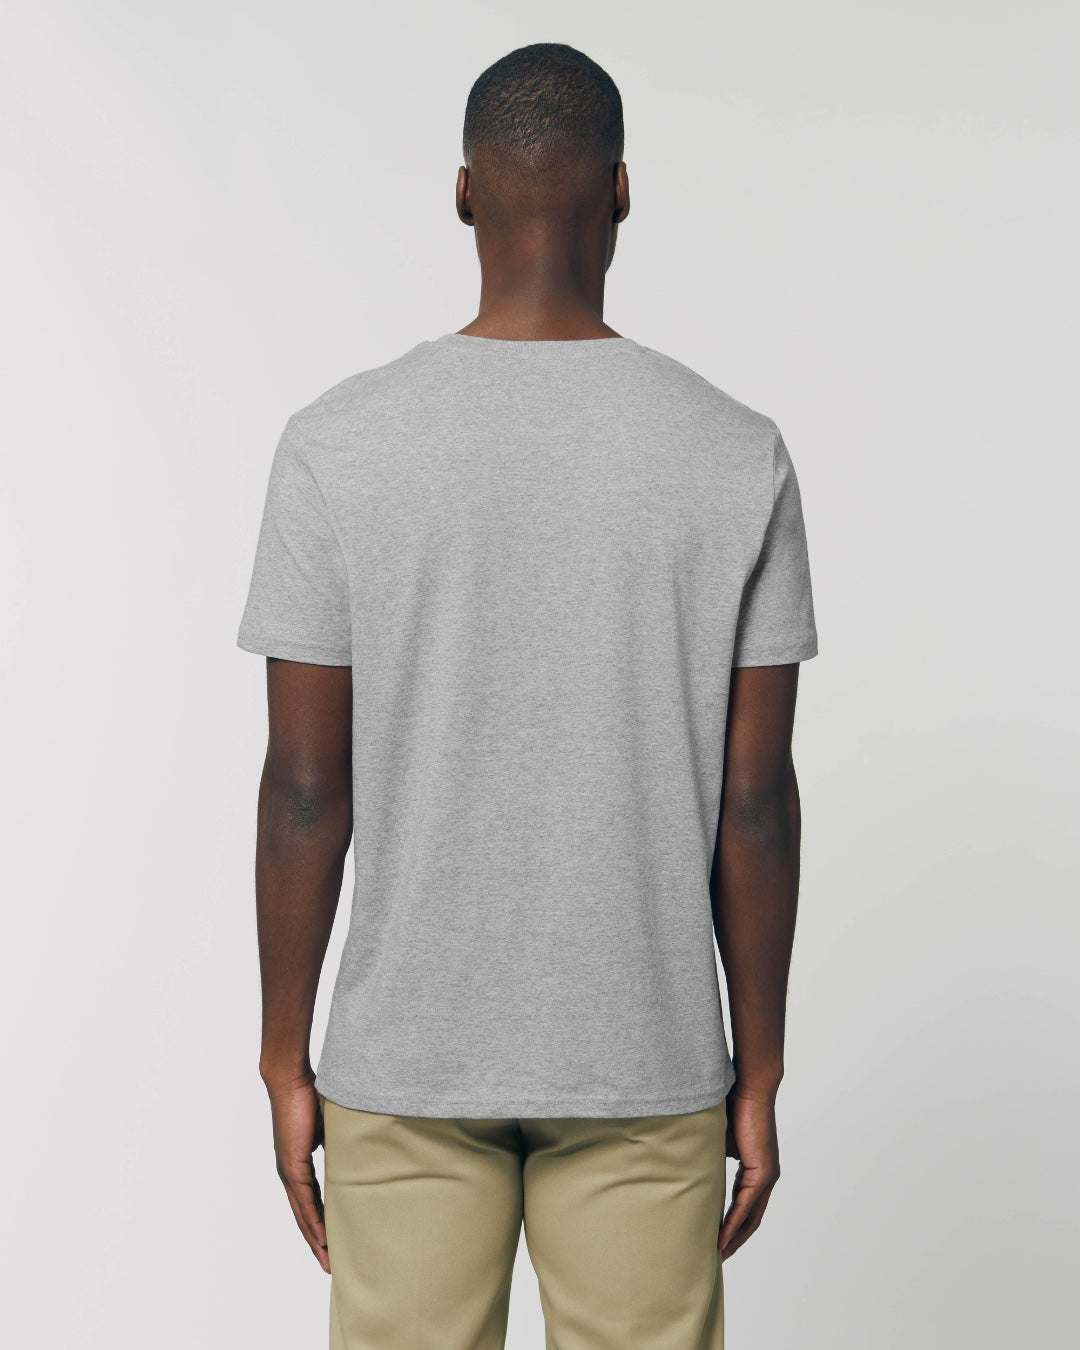 The Green Tee - sustainable, vegan and plastic free t-shirt - colour: heather grey